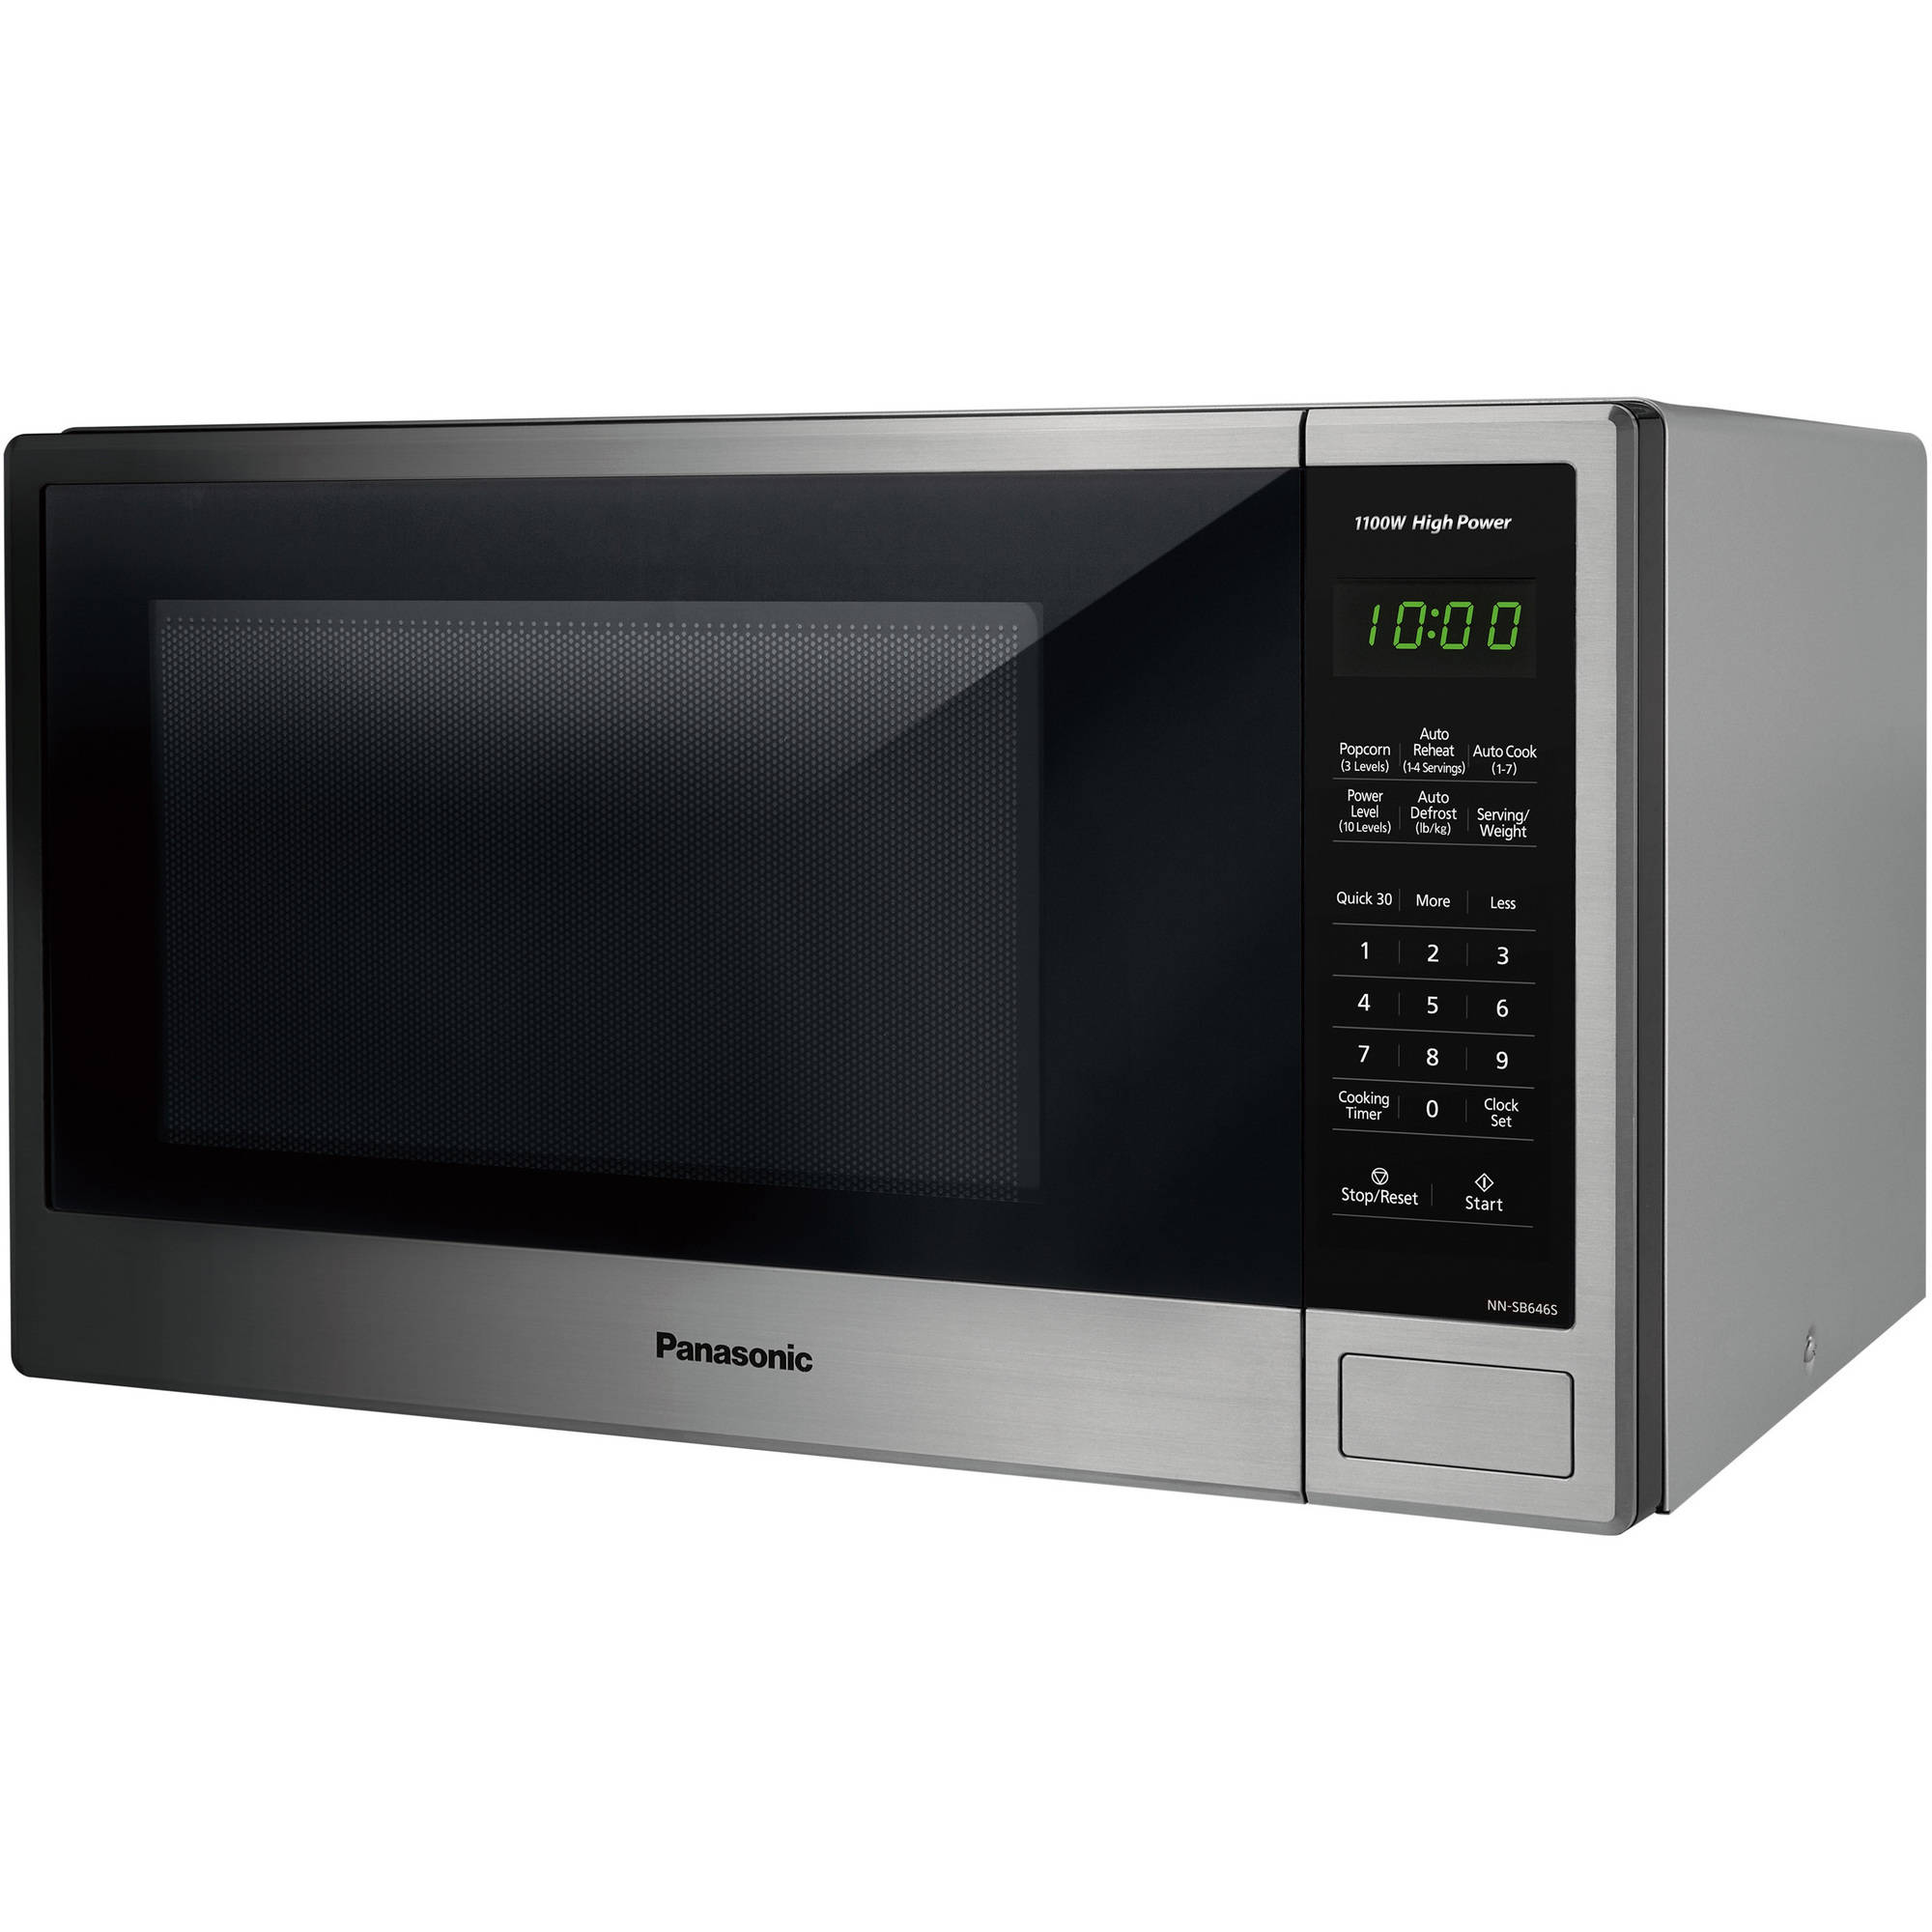 Panasonic Ft Cu 1 3 Microwave Oven Stainless